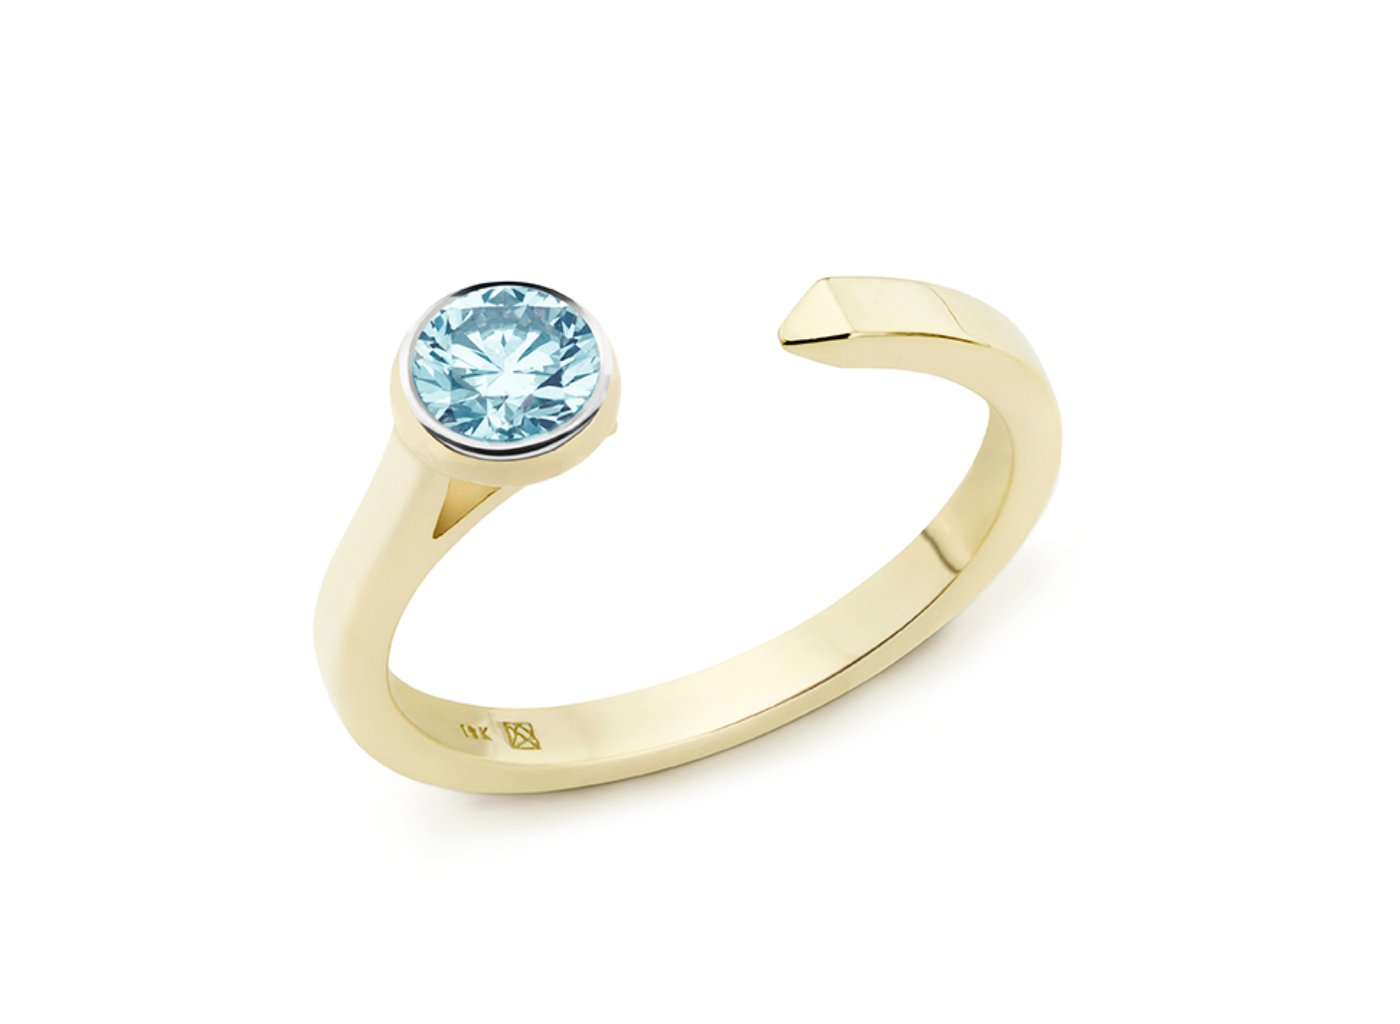 Side view of Solitaire open top 3/8 carat ring with blue diamond